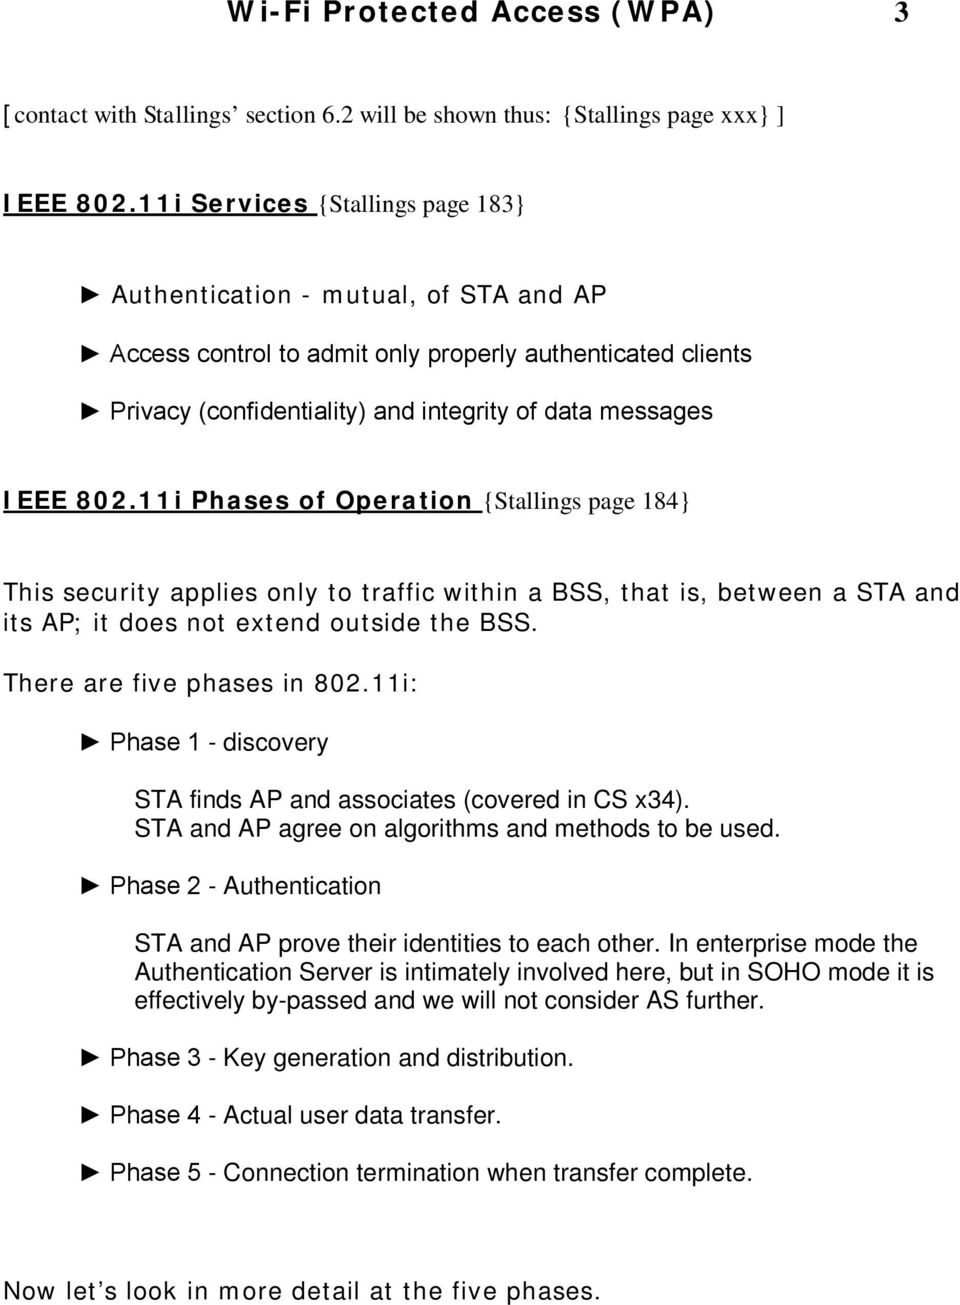 11i Phases of Operation {Stallings page 184} This security applies only to traffic within a BSS, that is, between a STA and its AP; it does not extend outside the BSS. There are five phases in 802.